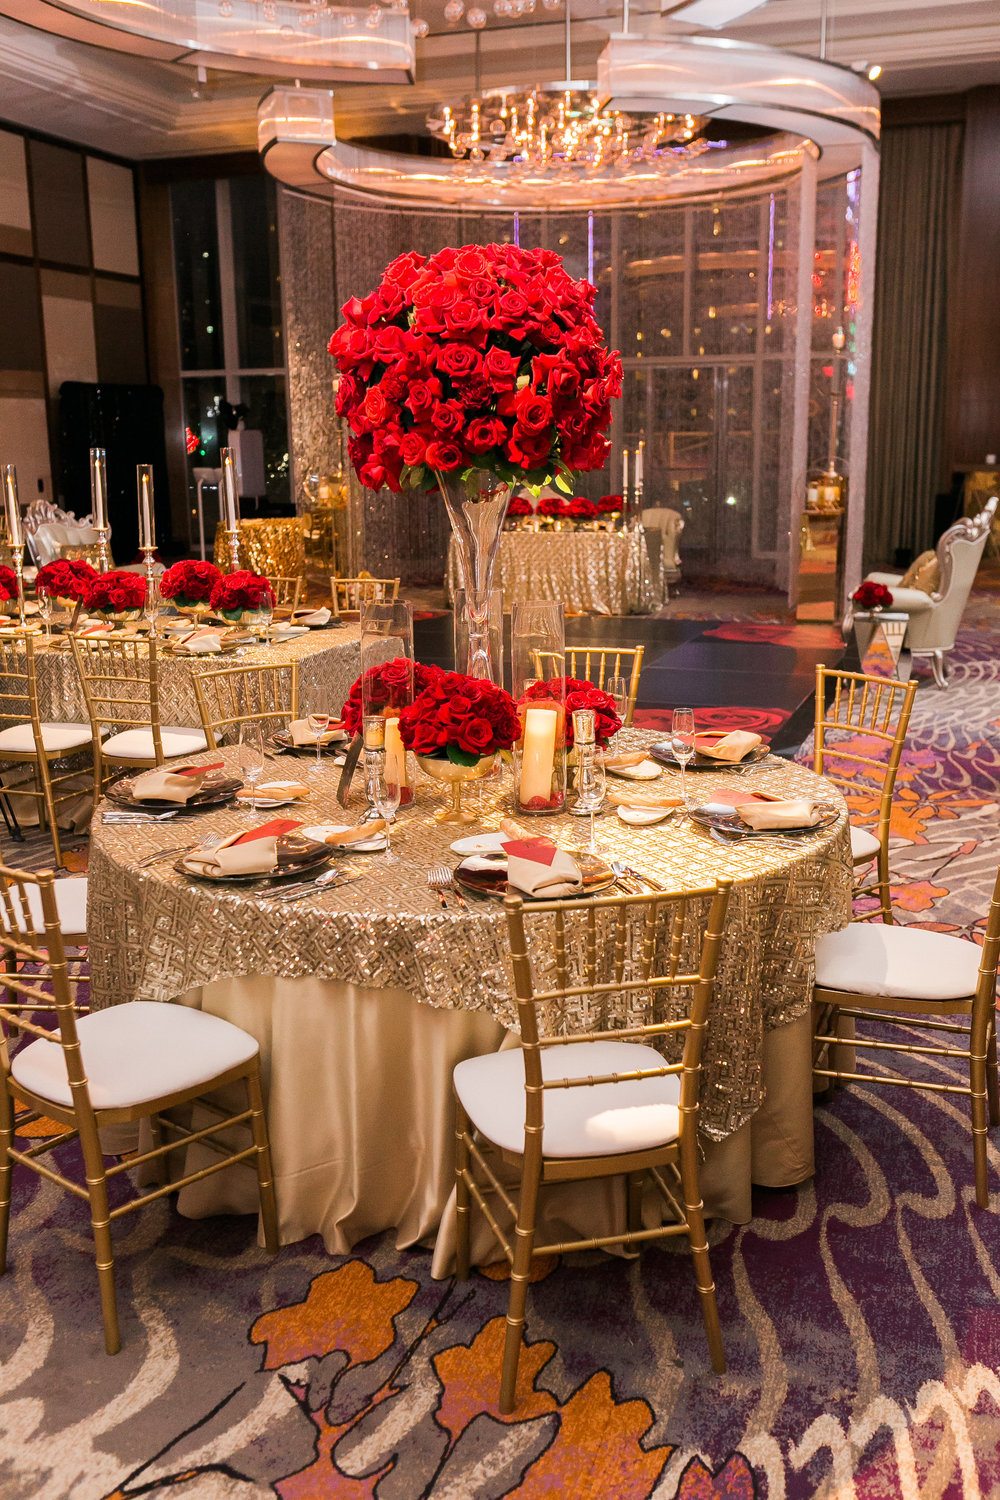 Tall centerpieces with red roses topped round centerpieces with gold linens.  Las Vegas Wedding Planner Andrea Eppolito shares this multicultural wedding.  Photo by J.Anne Photography. Wedding at Mandarin Oriental Las Vegas.  Decor by DBD Vegas.